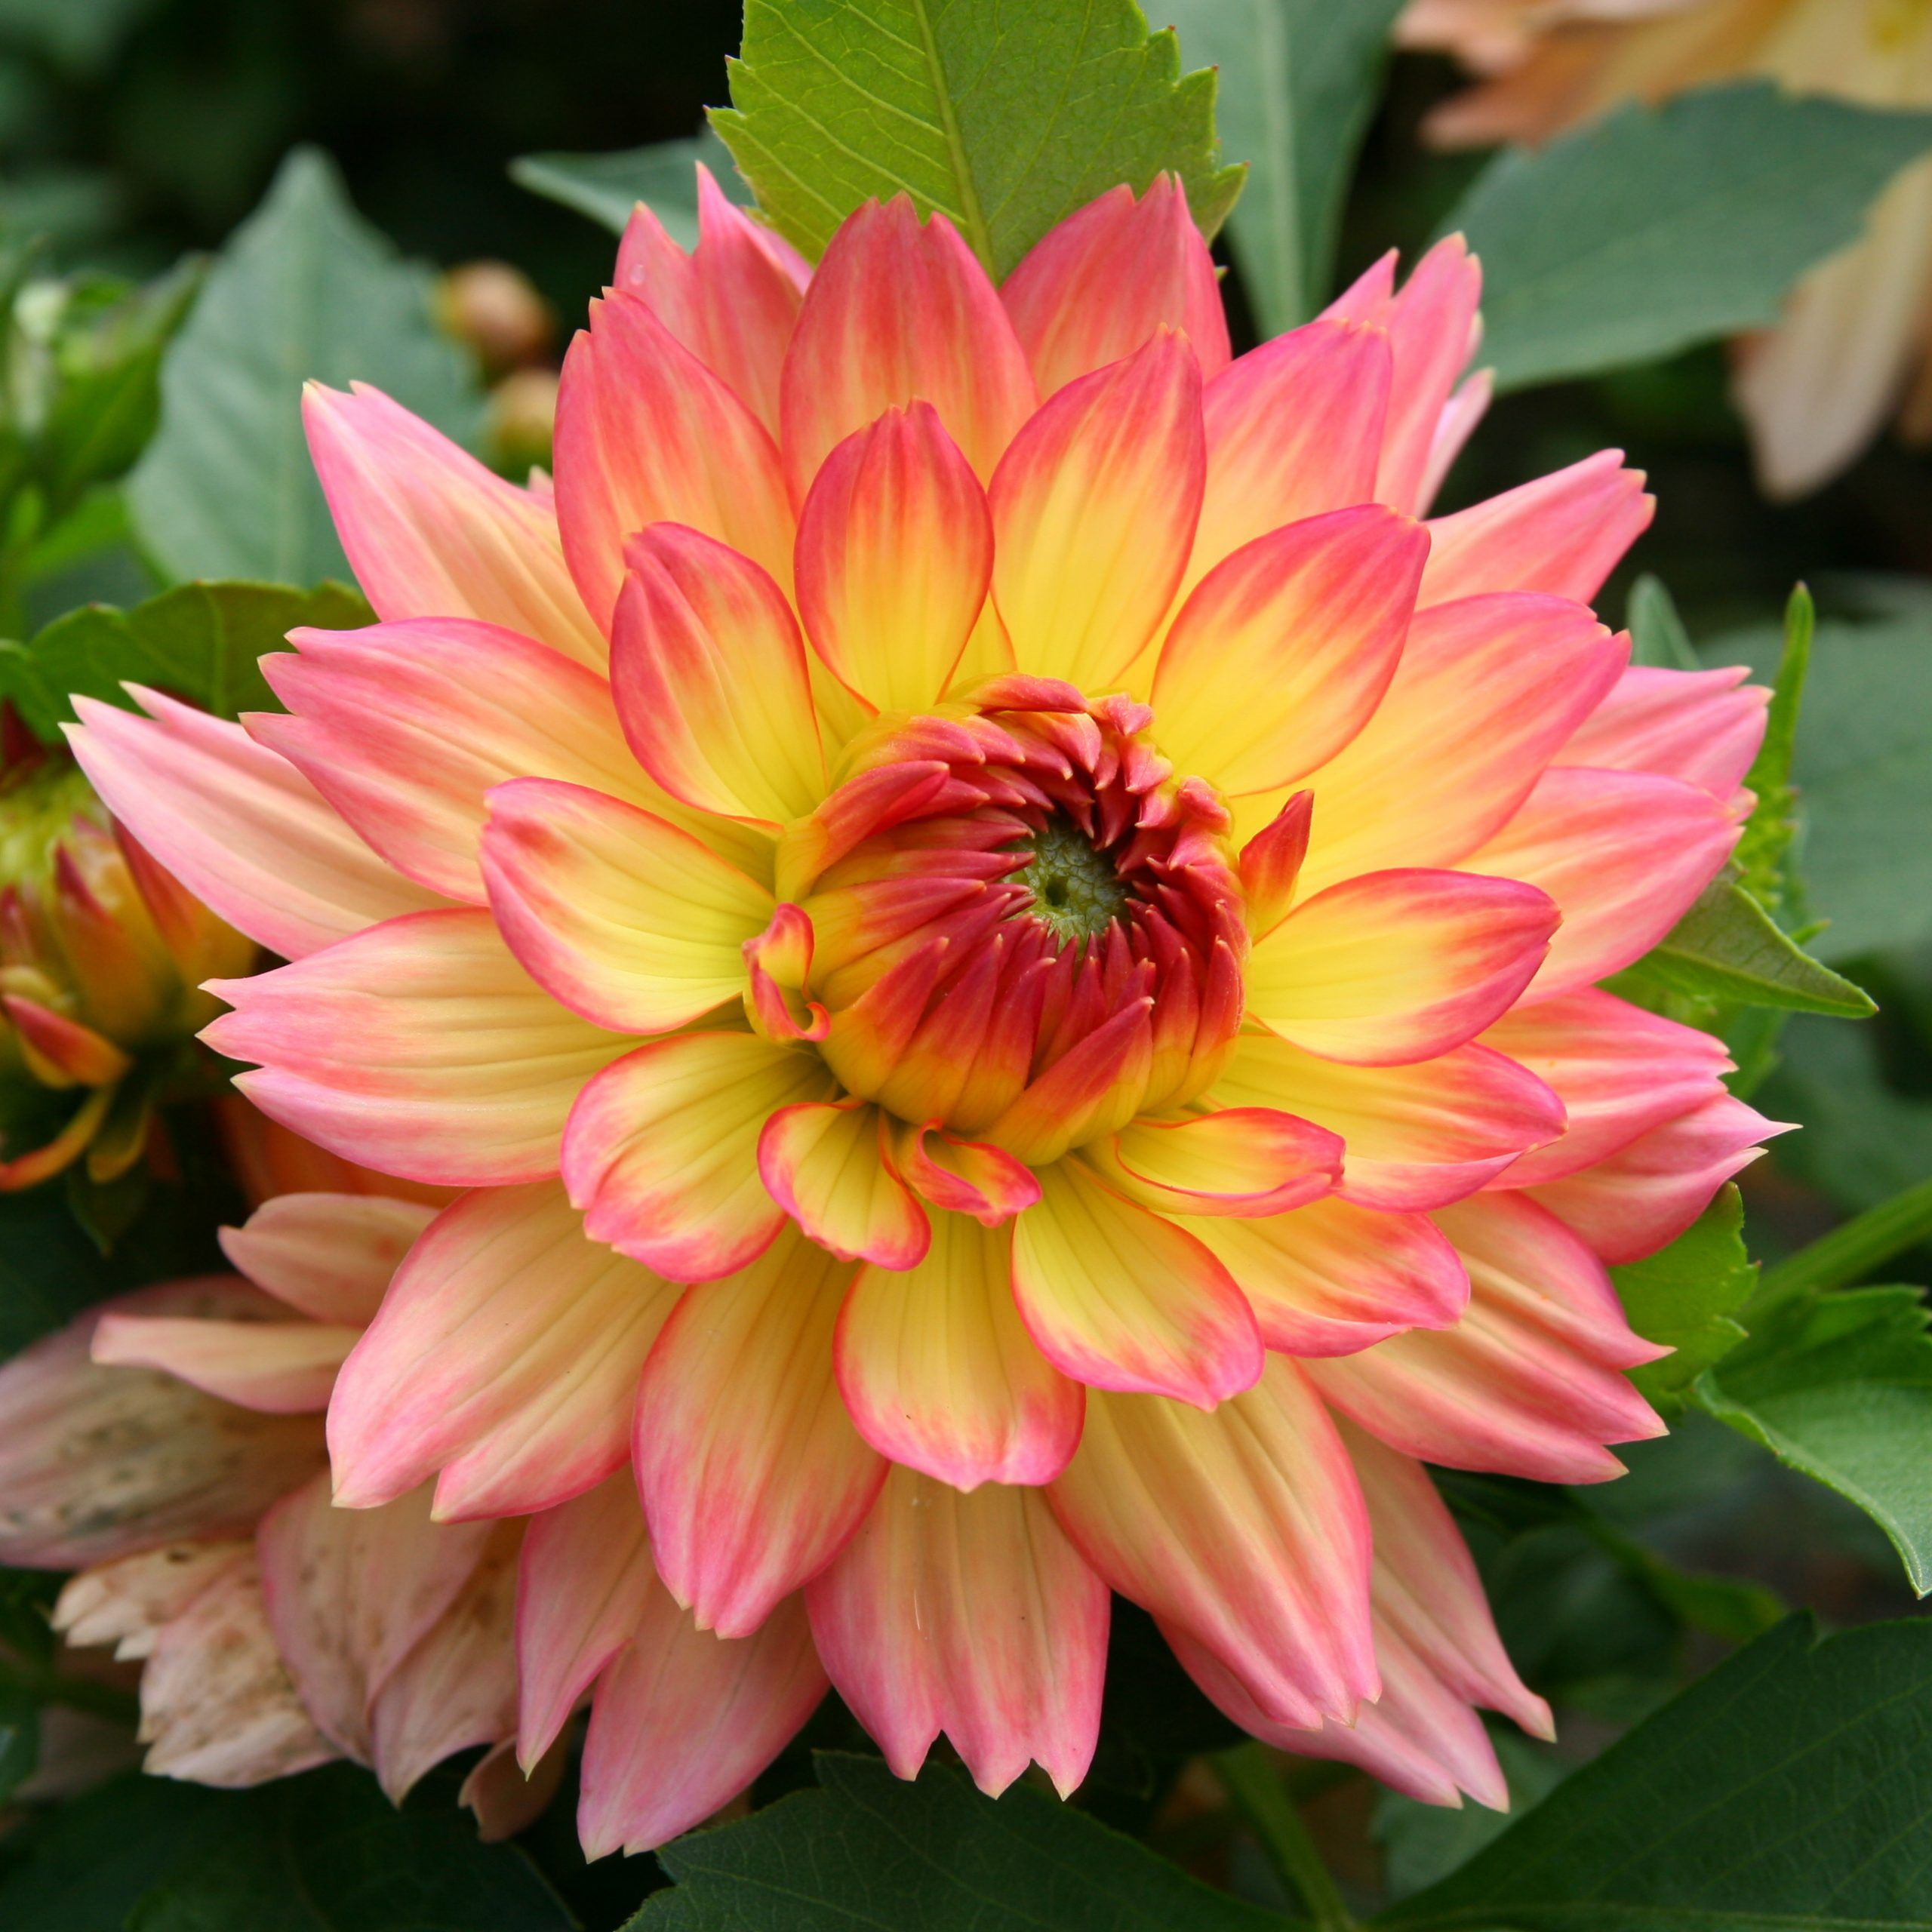 Do You Know How Many People Show Up At Dahlia Flower Name In Sanskrit Dahlia Flower Name In In 2020 Flower Names Dahlia Flower Bonsai Flower